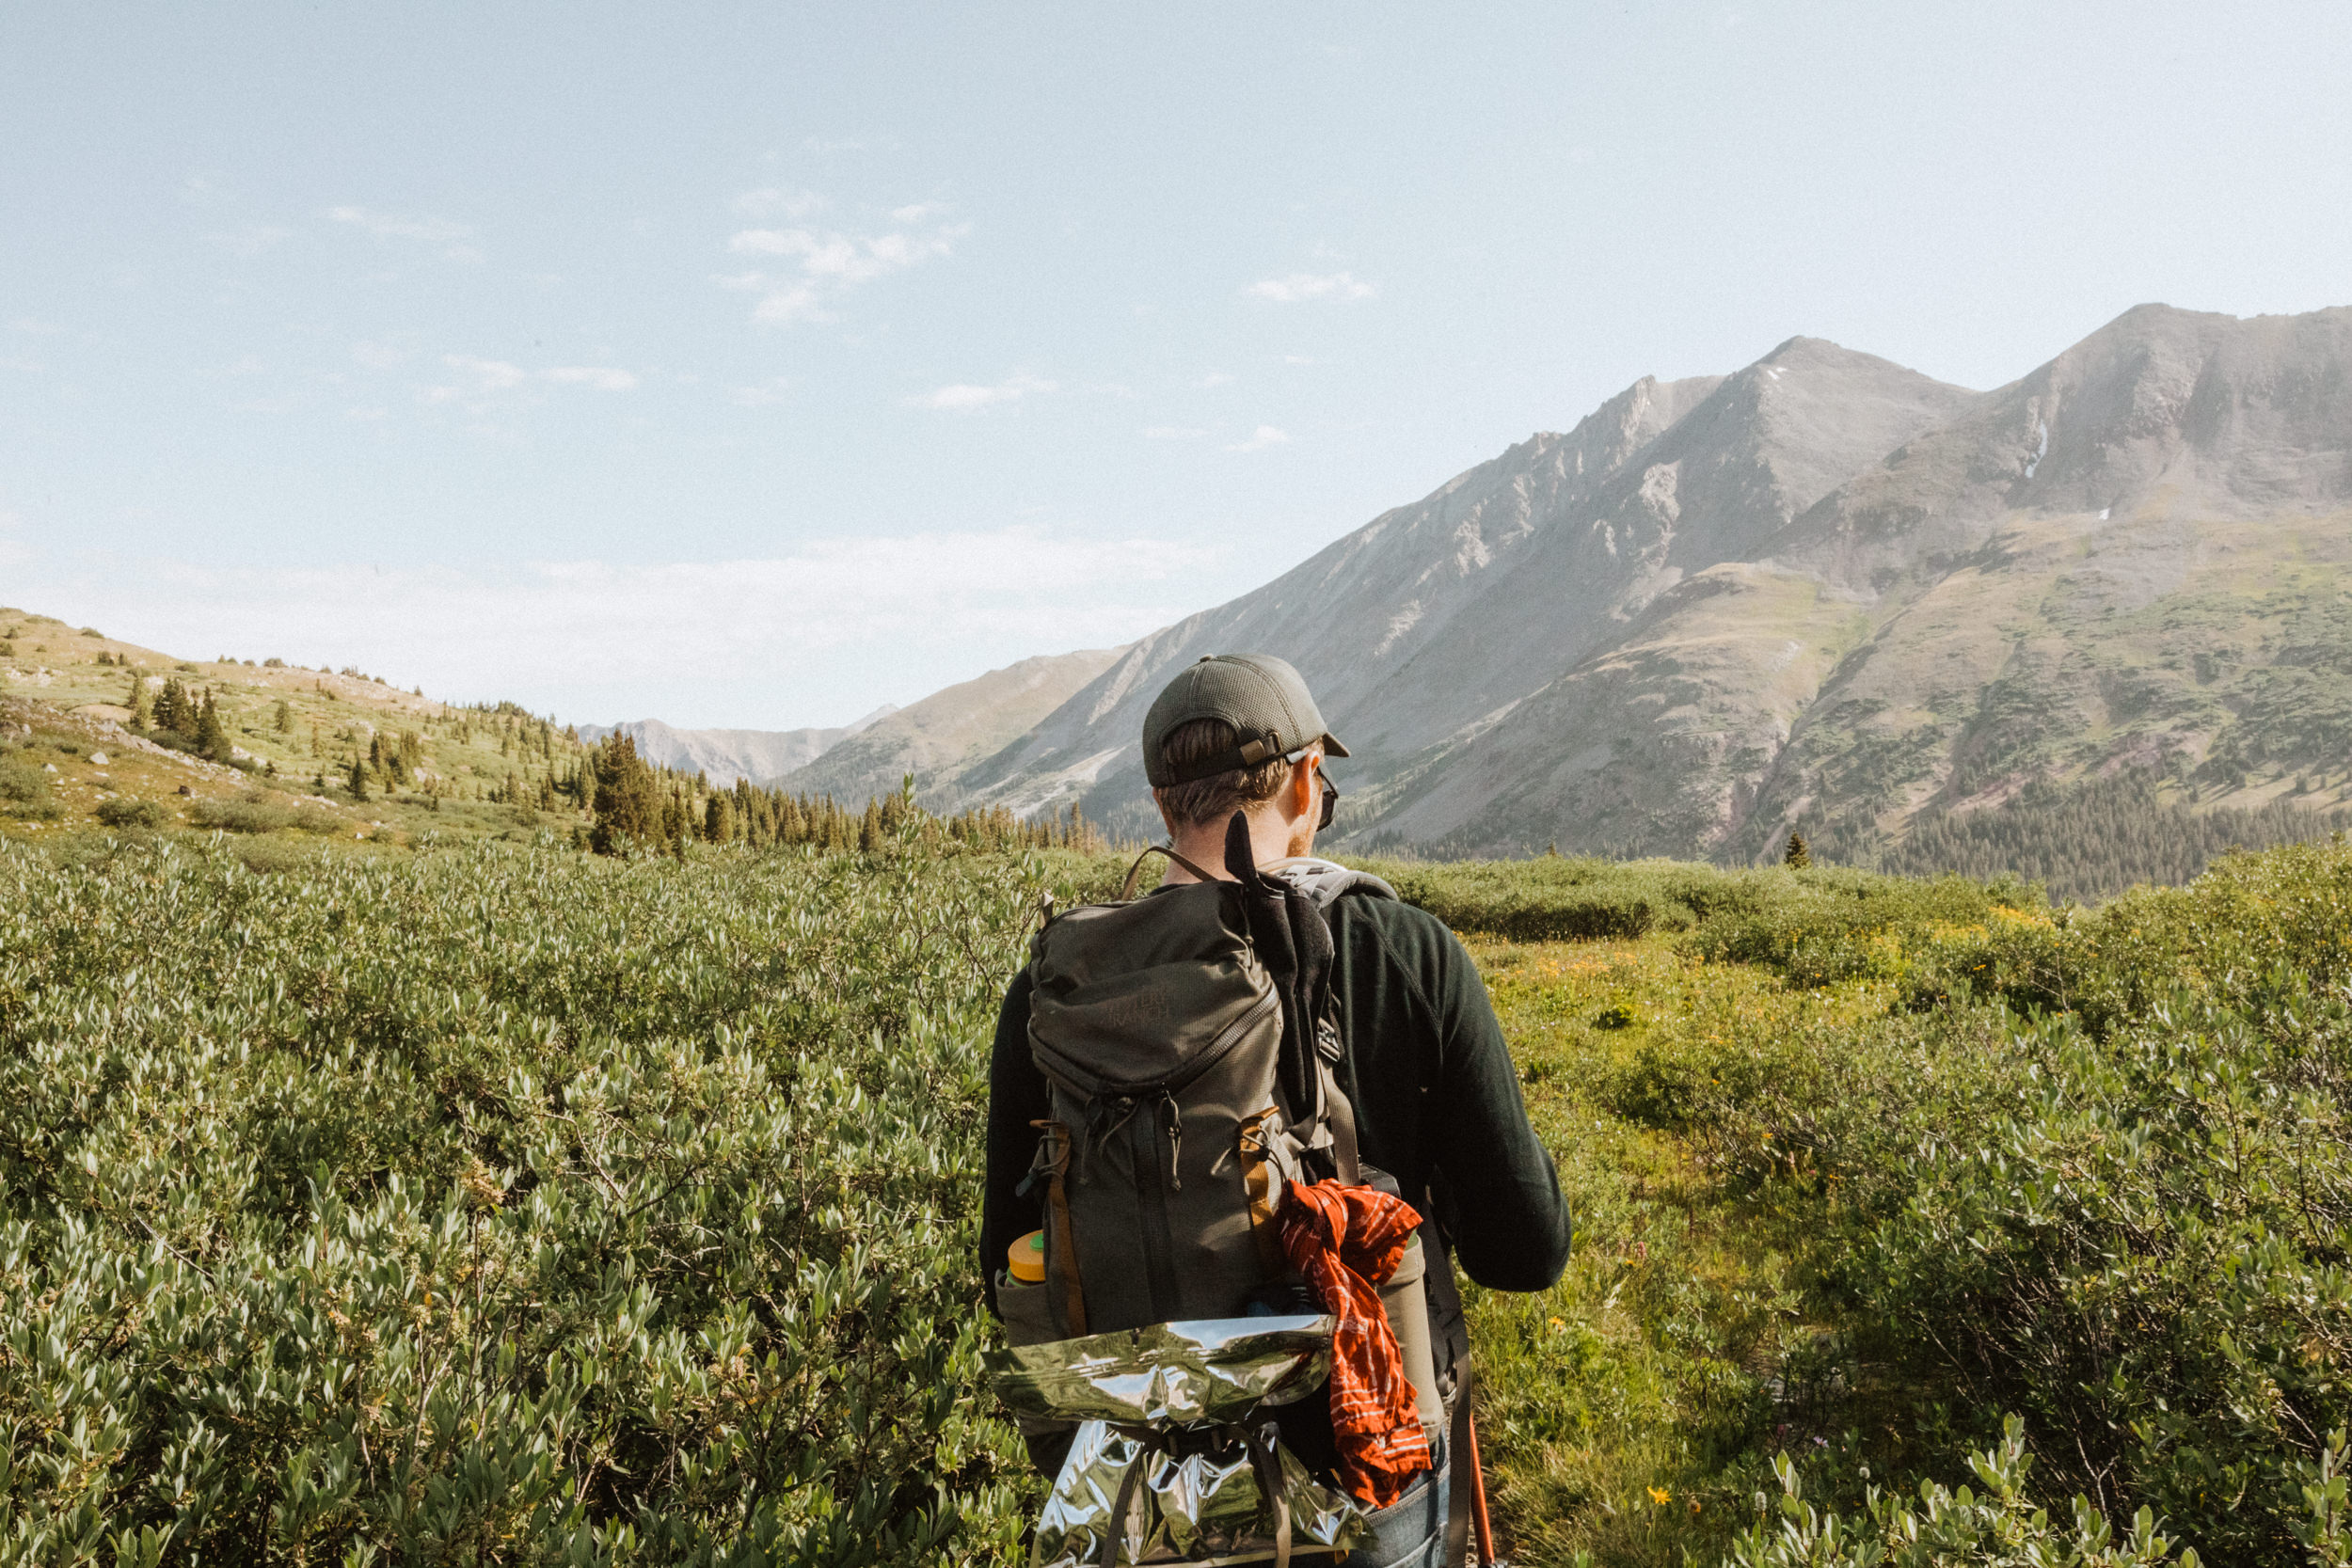 Top 10 Camping Must-Haves - Wag Bags